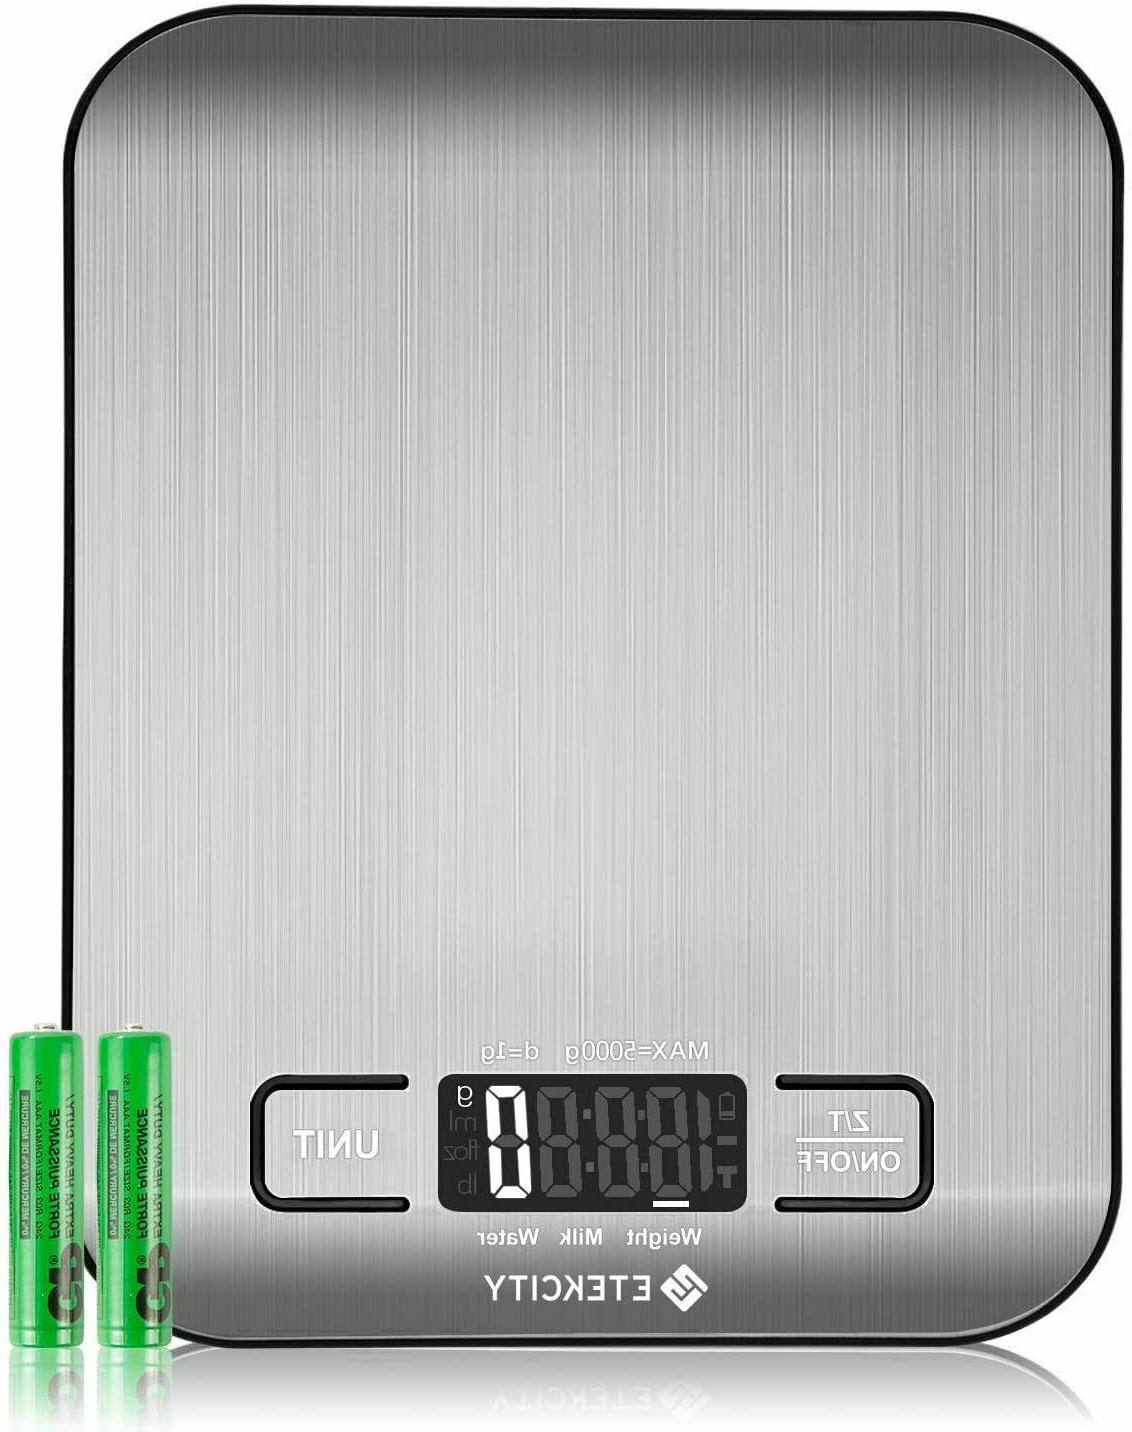 upgraded digital kitchen food scale multifunction small